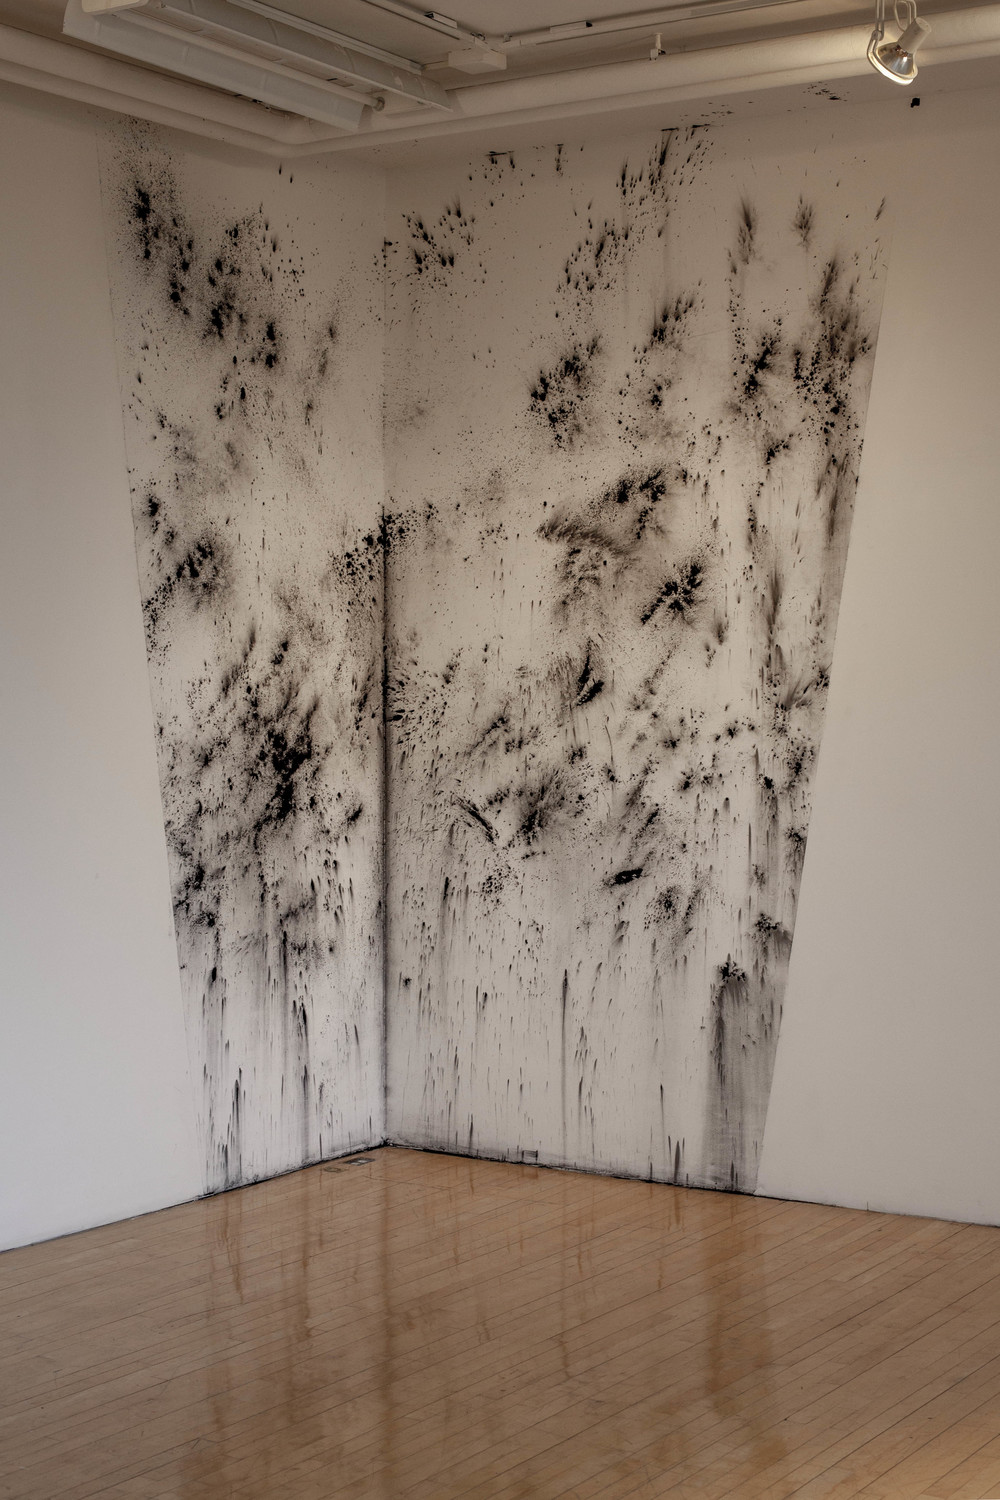 Polvareda (Dust Cloud)  2015, 12 ft x 7 ft, wall drawing, powdered graphite and charcoal.